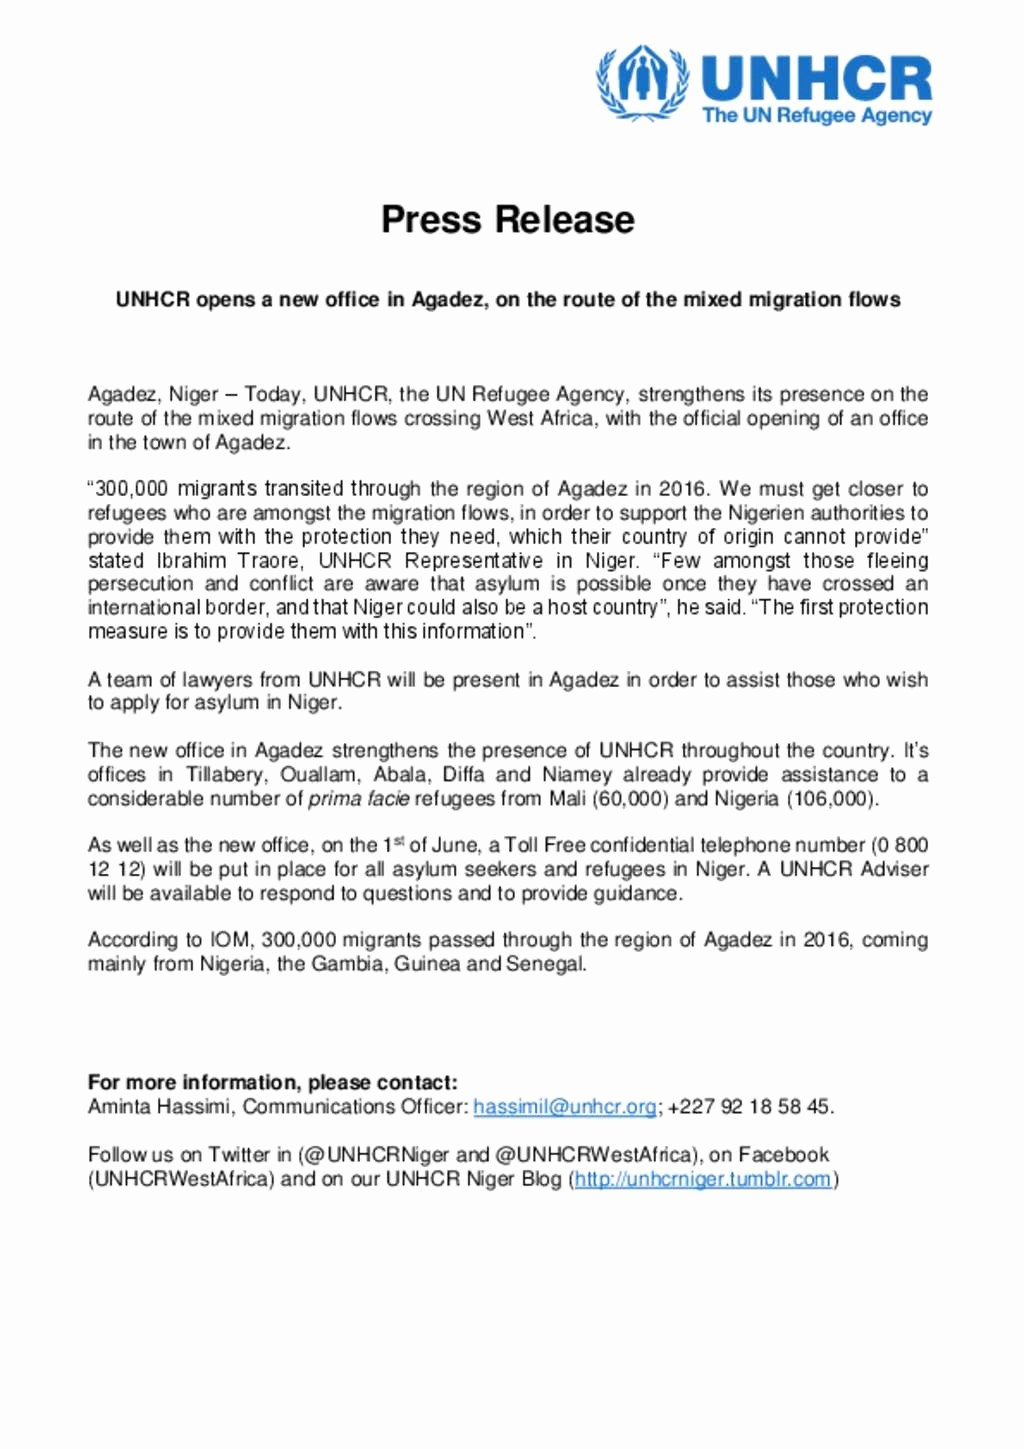 New Product Press Release Sample Fresh Document Unhcr Niger Press Release